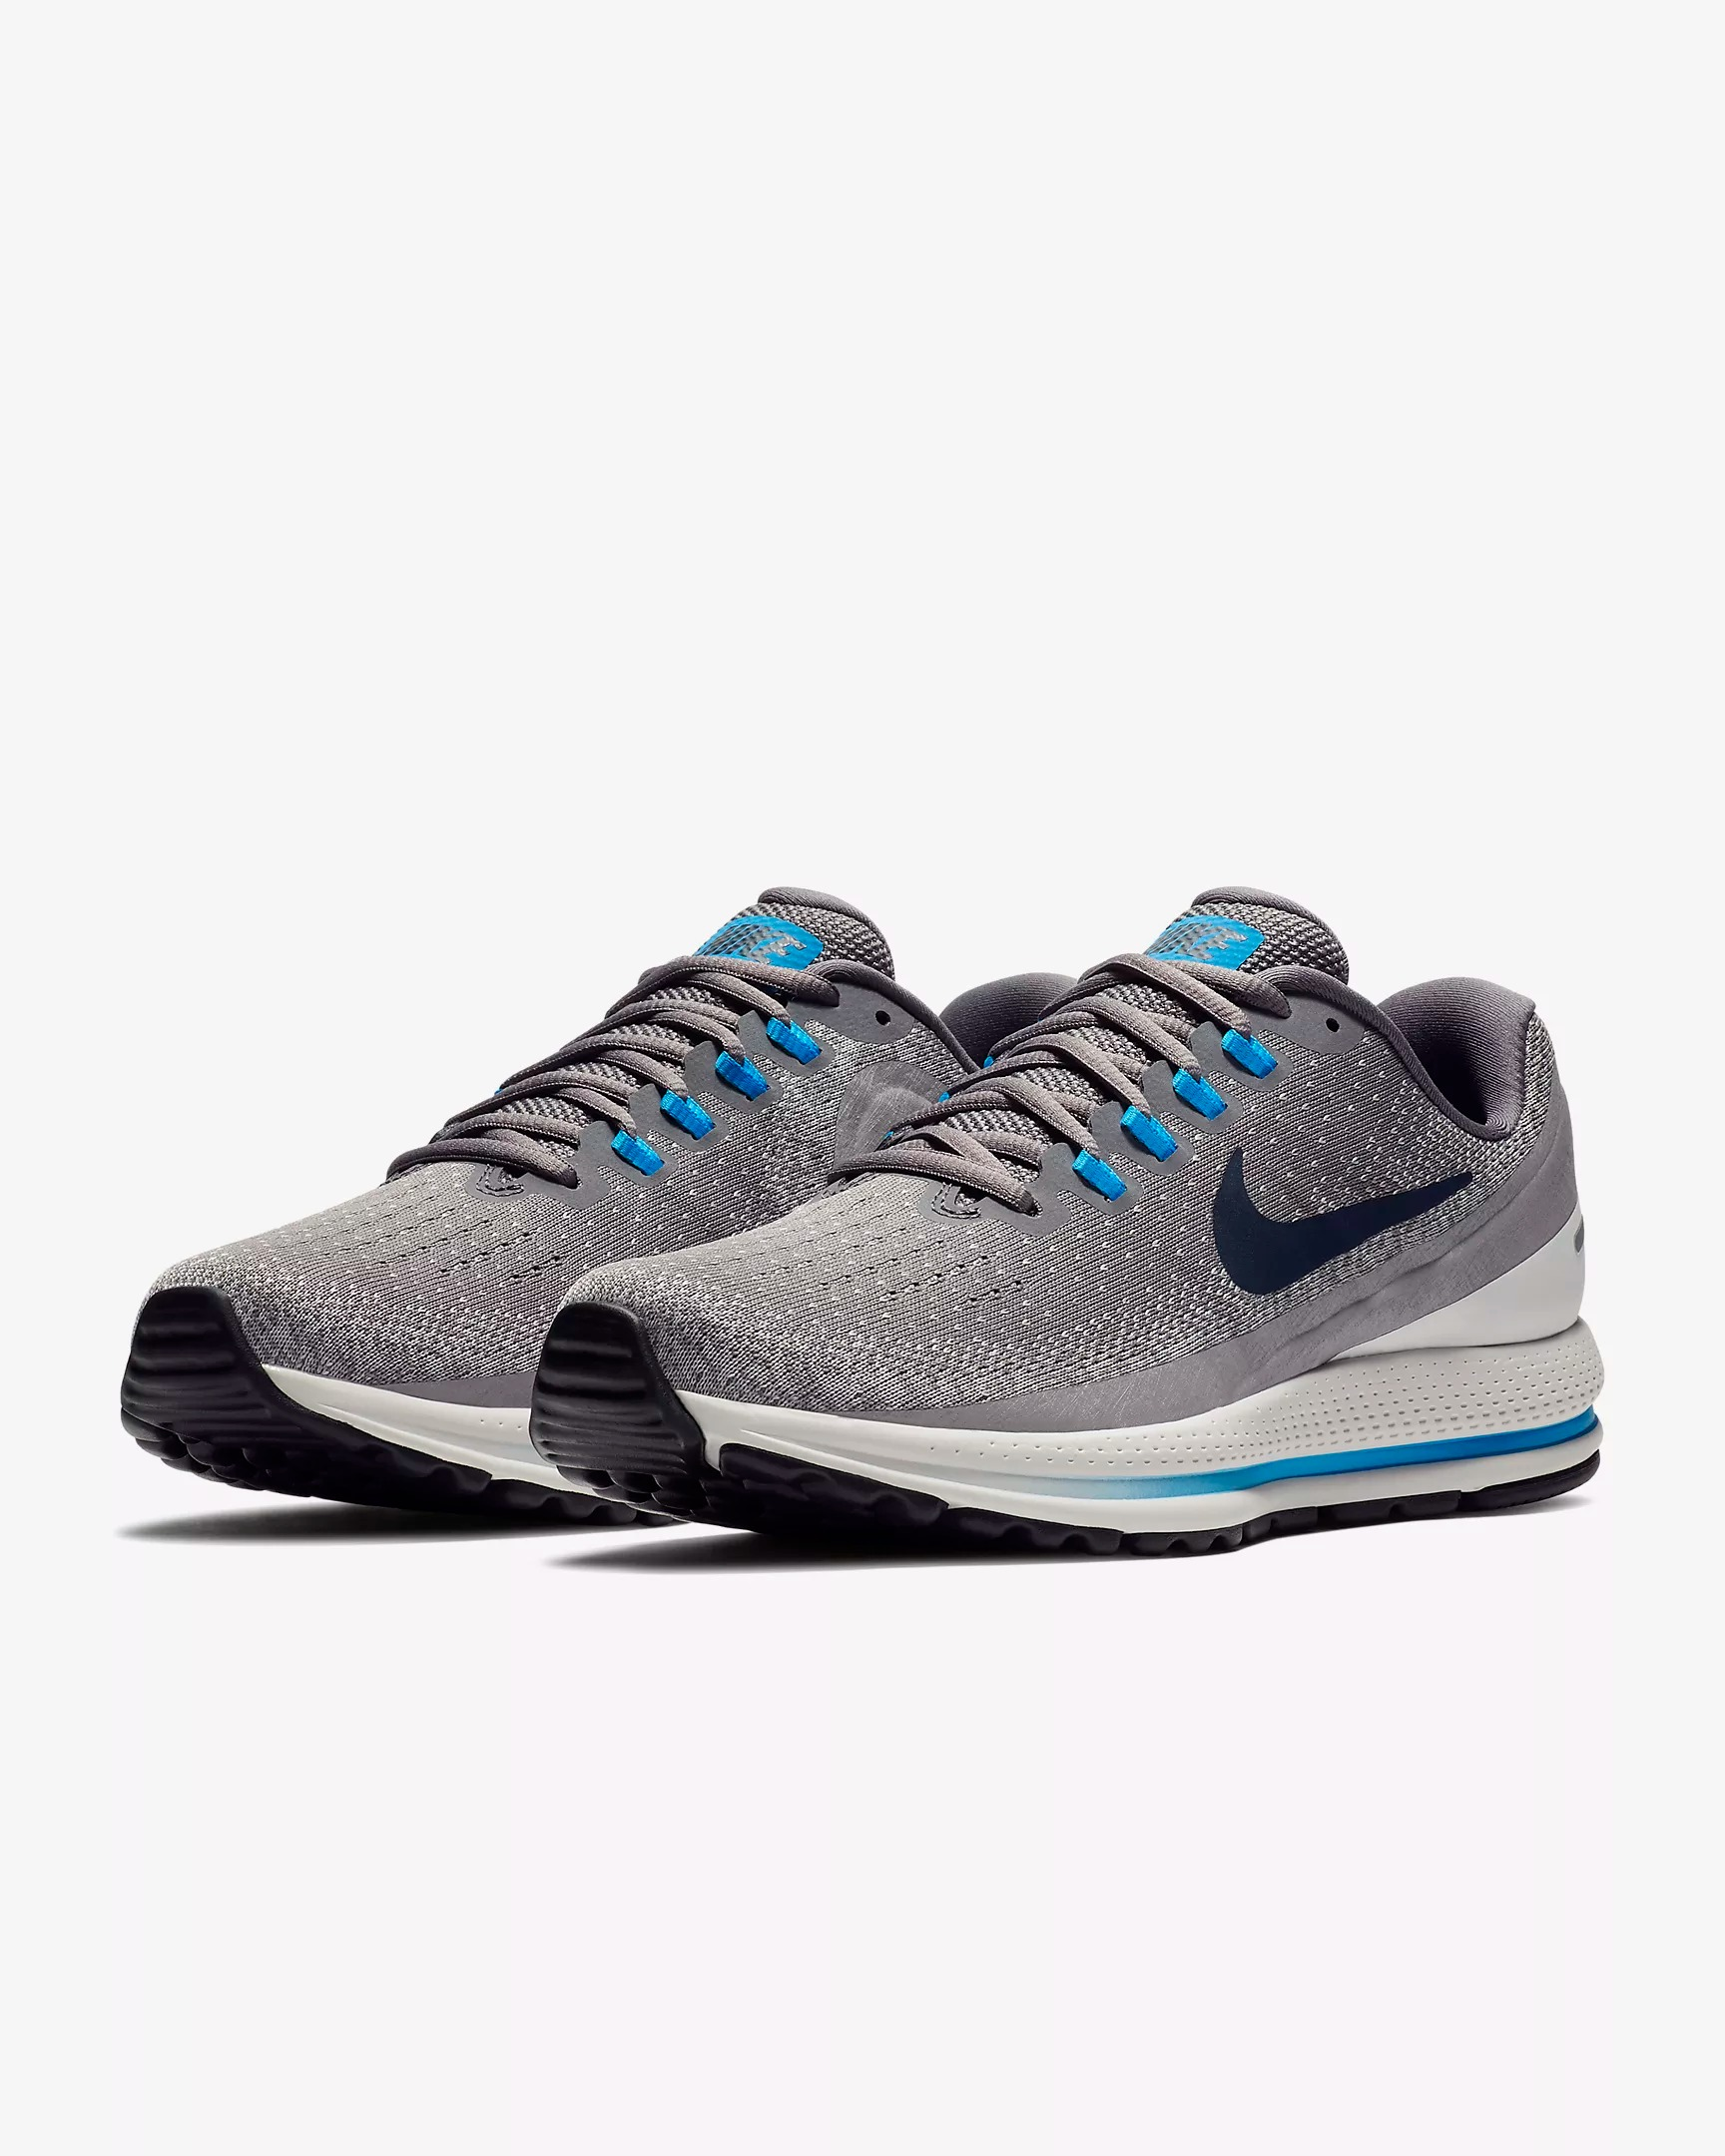 buy online ae221 9081e Nike Air Zoom Vomero 13 Running Shoes - SPORT SHOES RUNNING ...